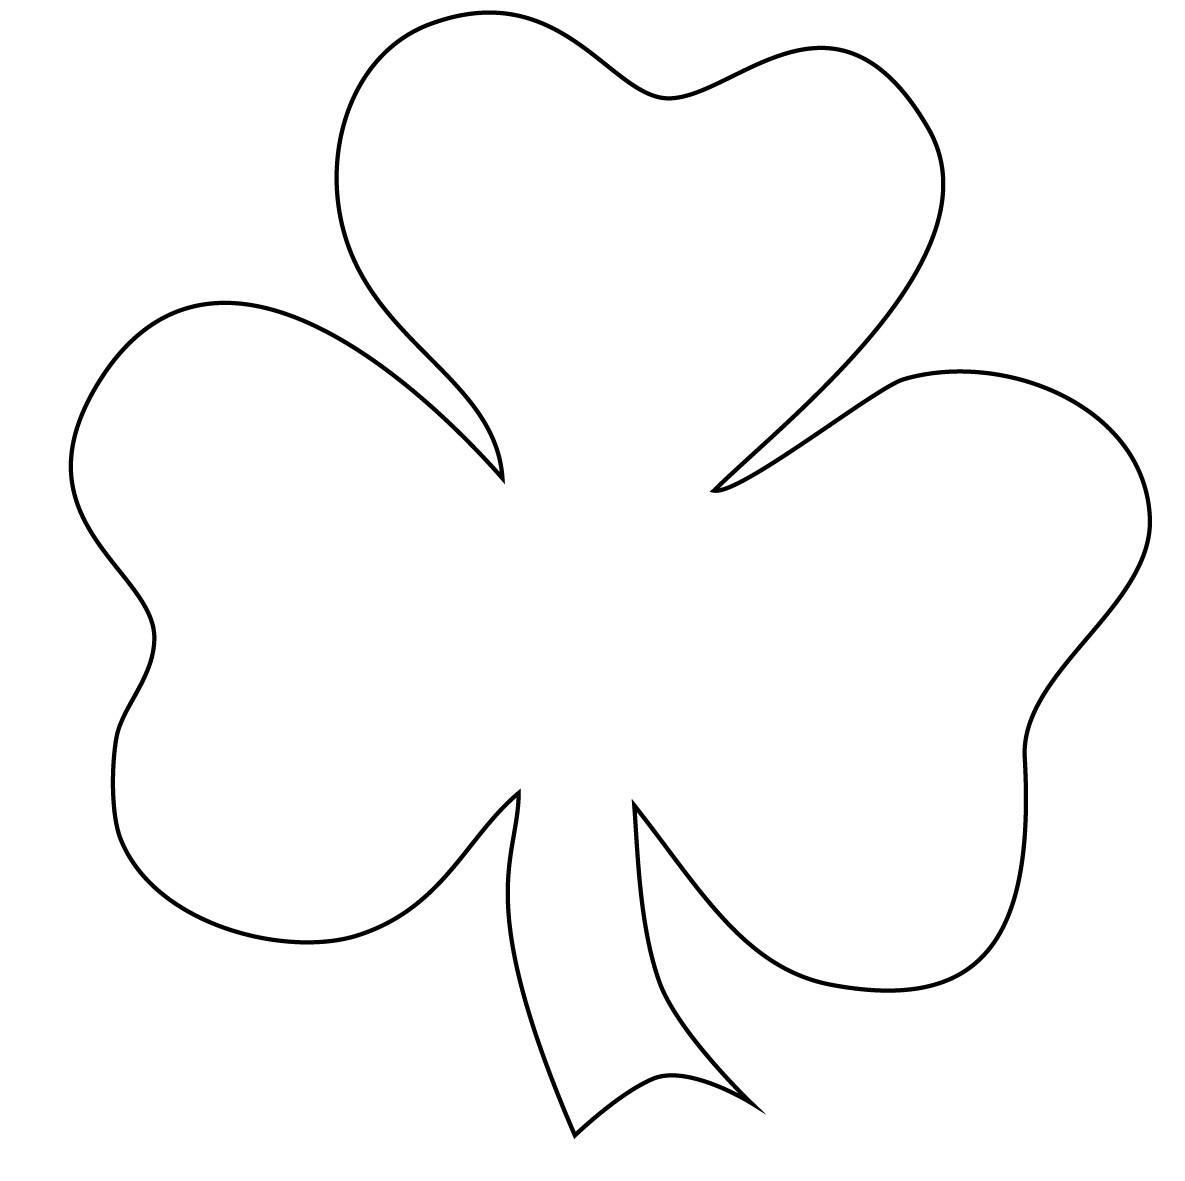 shamrock coloring pages printable - Shamrock Coloring Pages